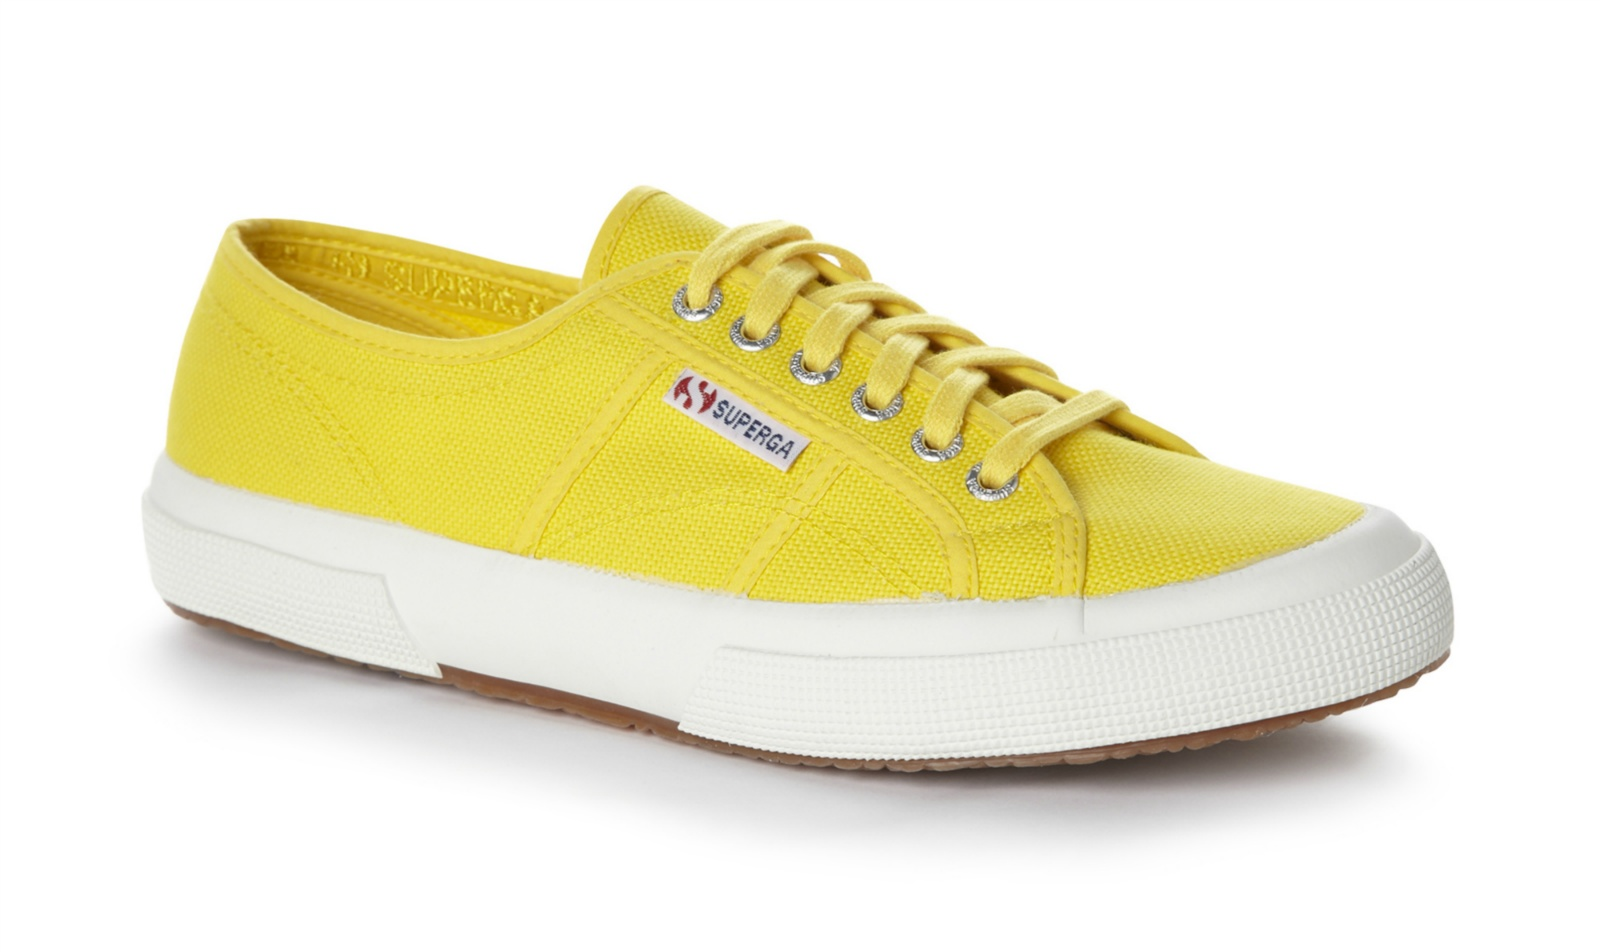 Superga: Comfy Sneakers Perfect for Summer